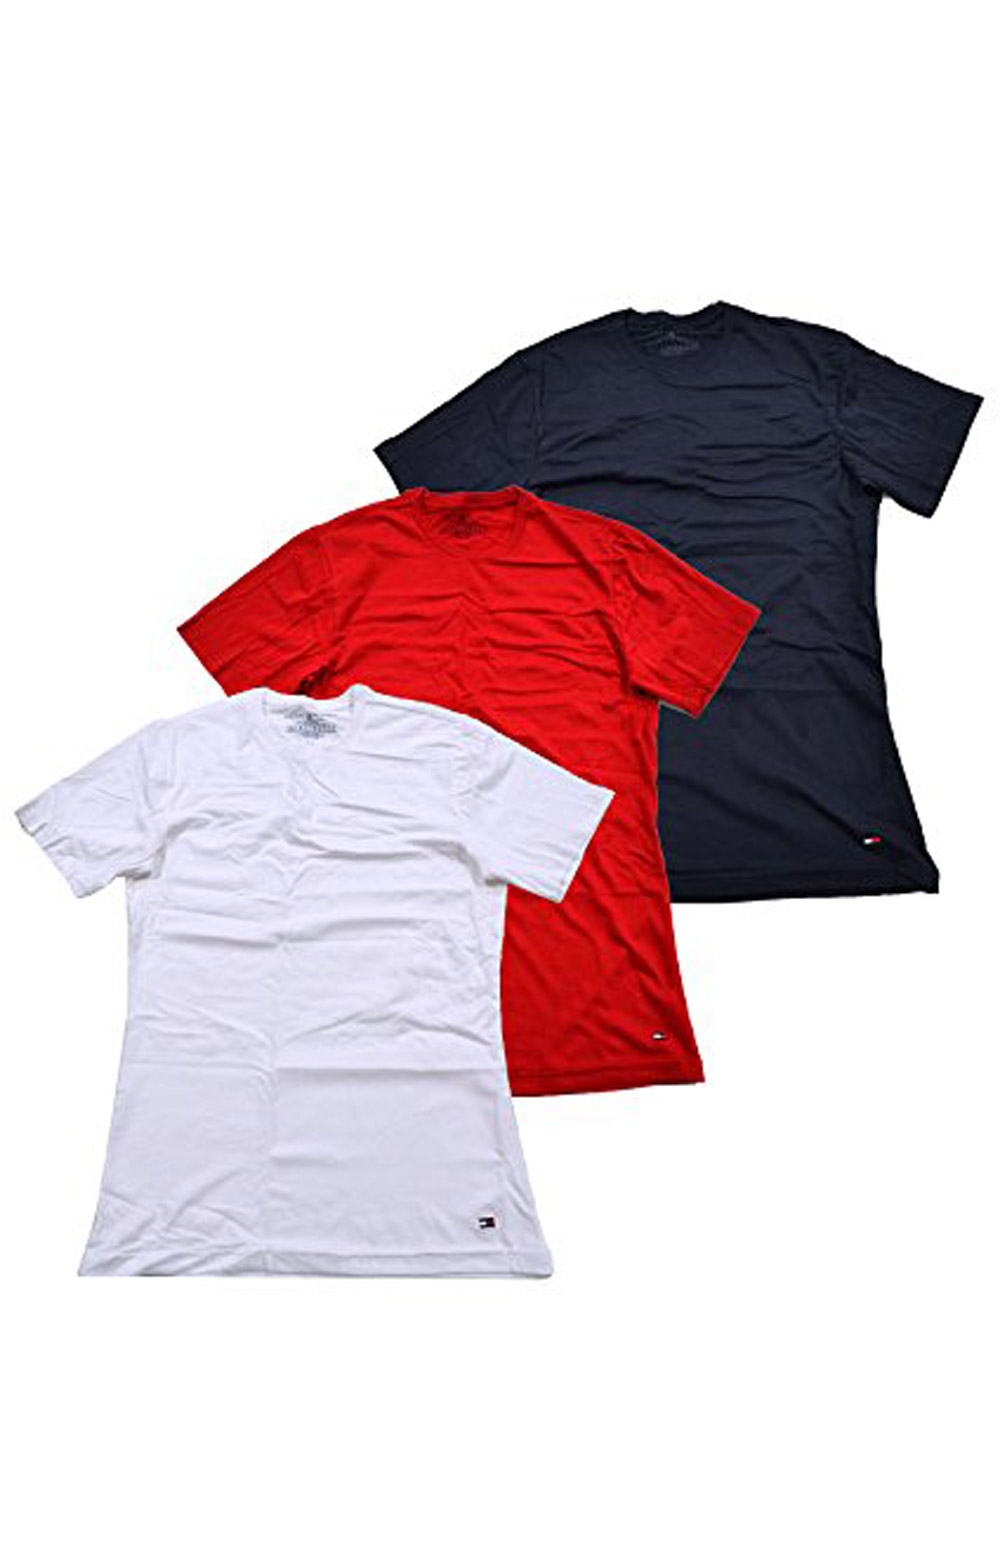 fe8fa89b Tommy Hilfiger, 3 Pack Cotton Classic Crewneck T-Shirts - Red/White ...